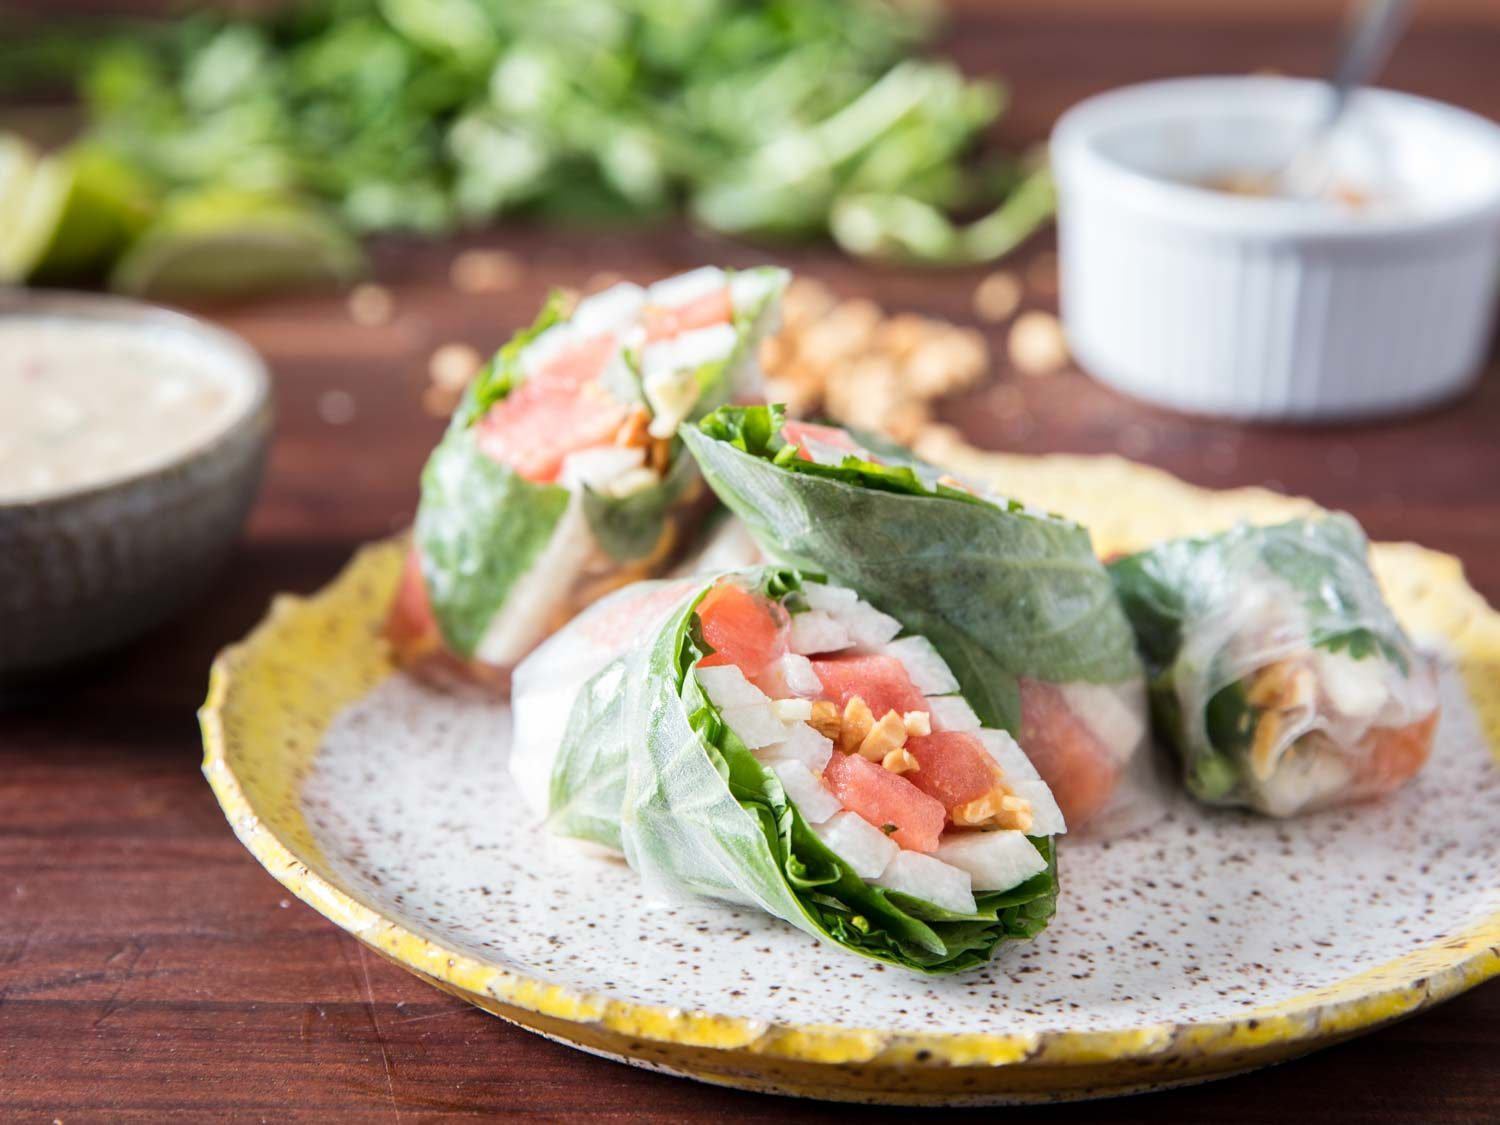 Summer Rolls With Jicama, Watermelon, And Herbs